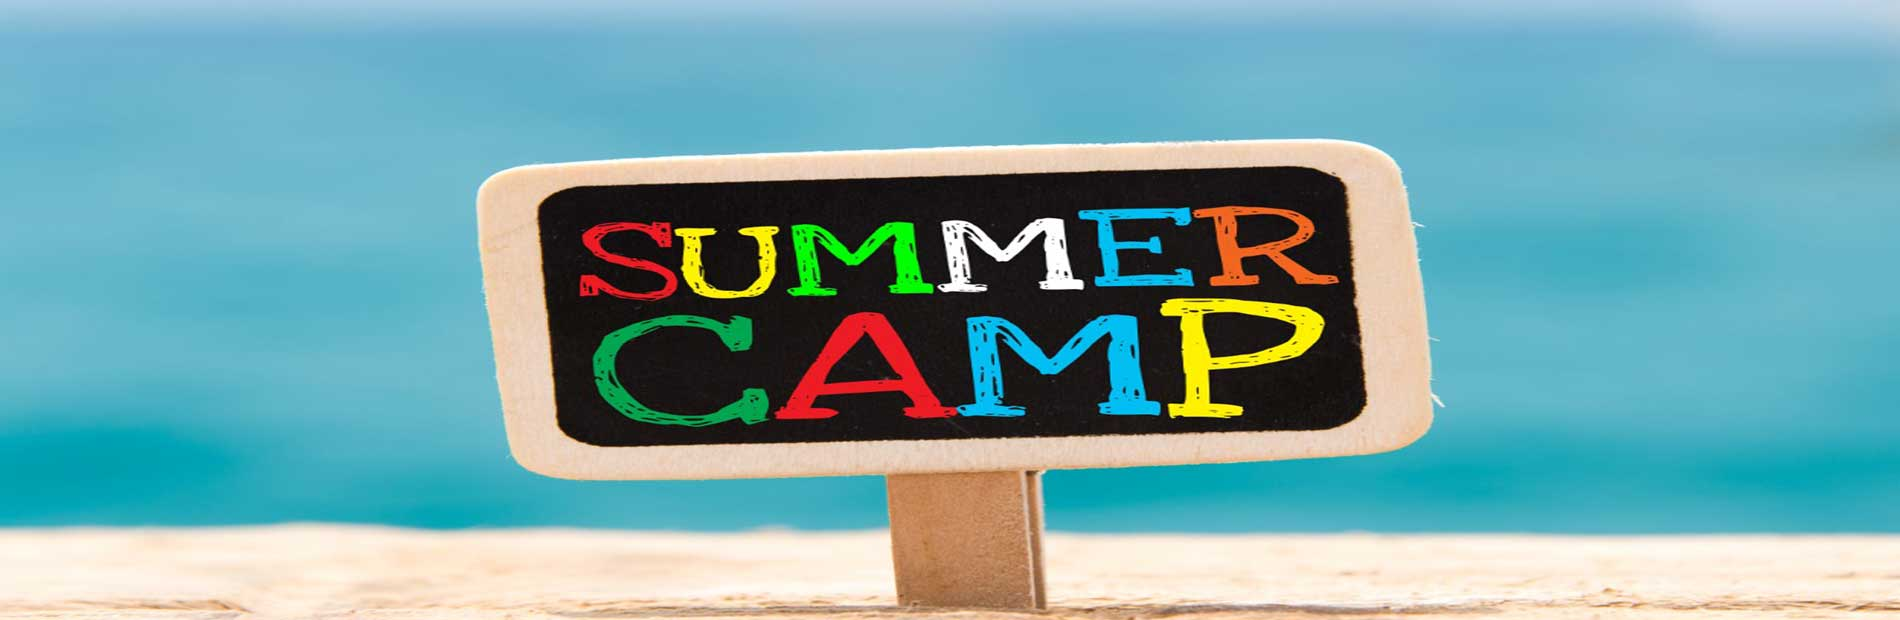 Summer Camps - Cabins